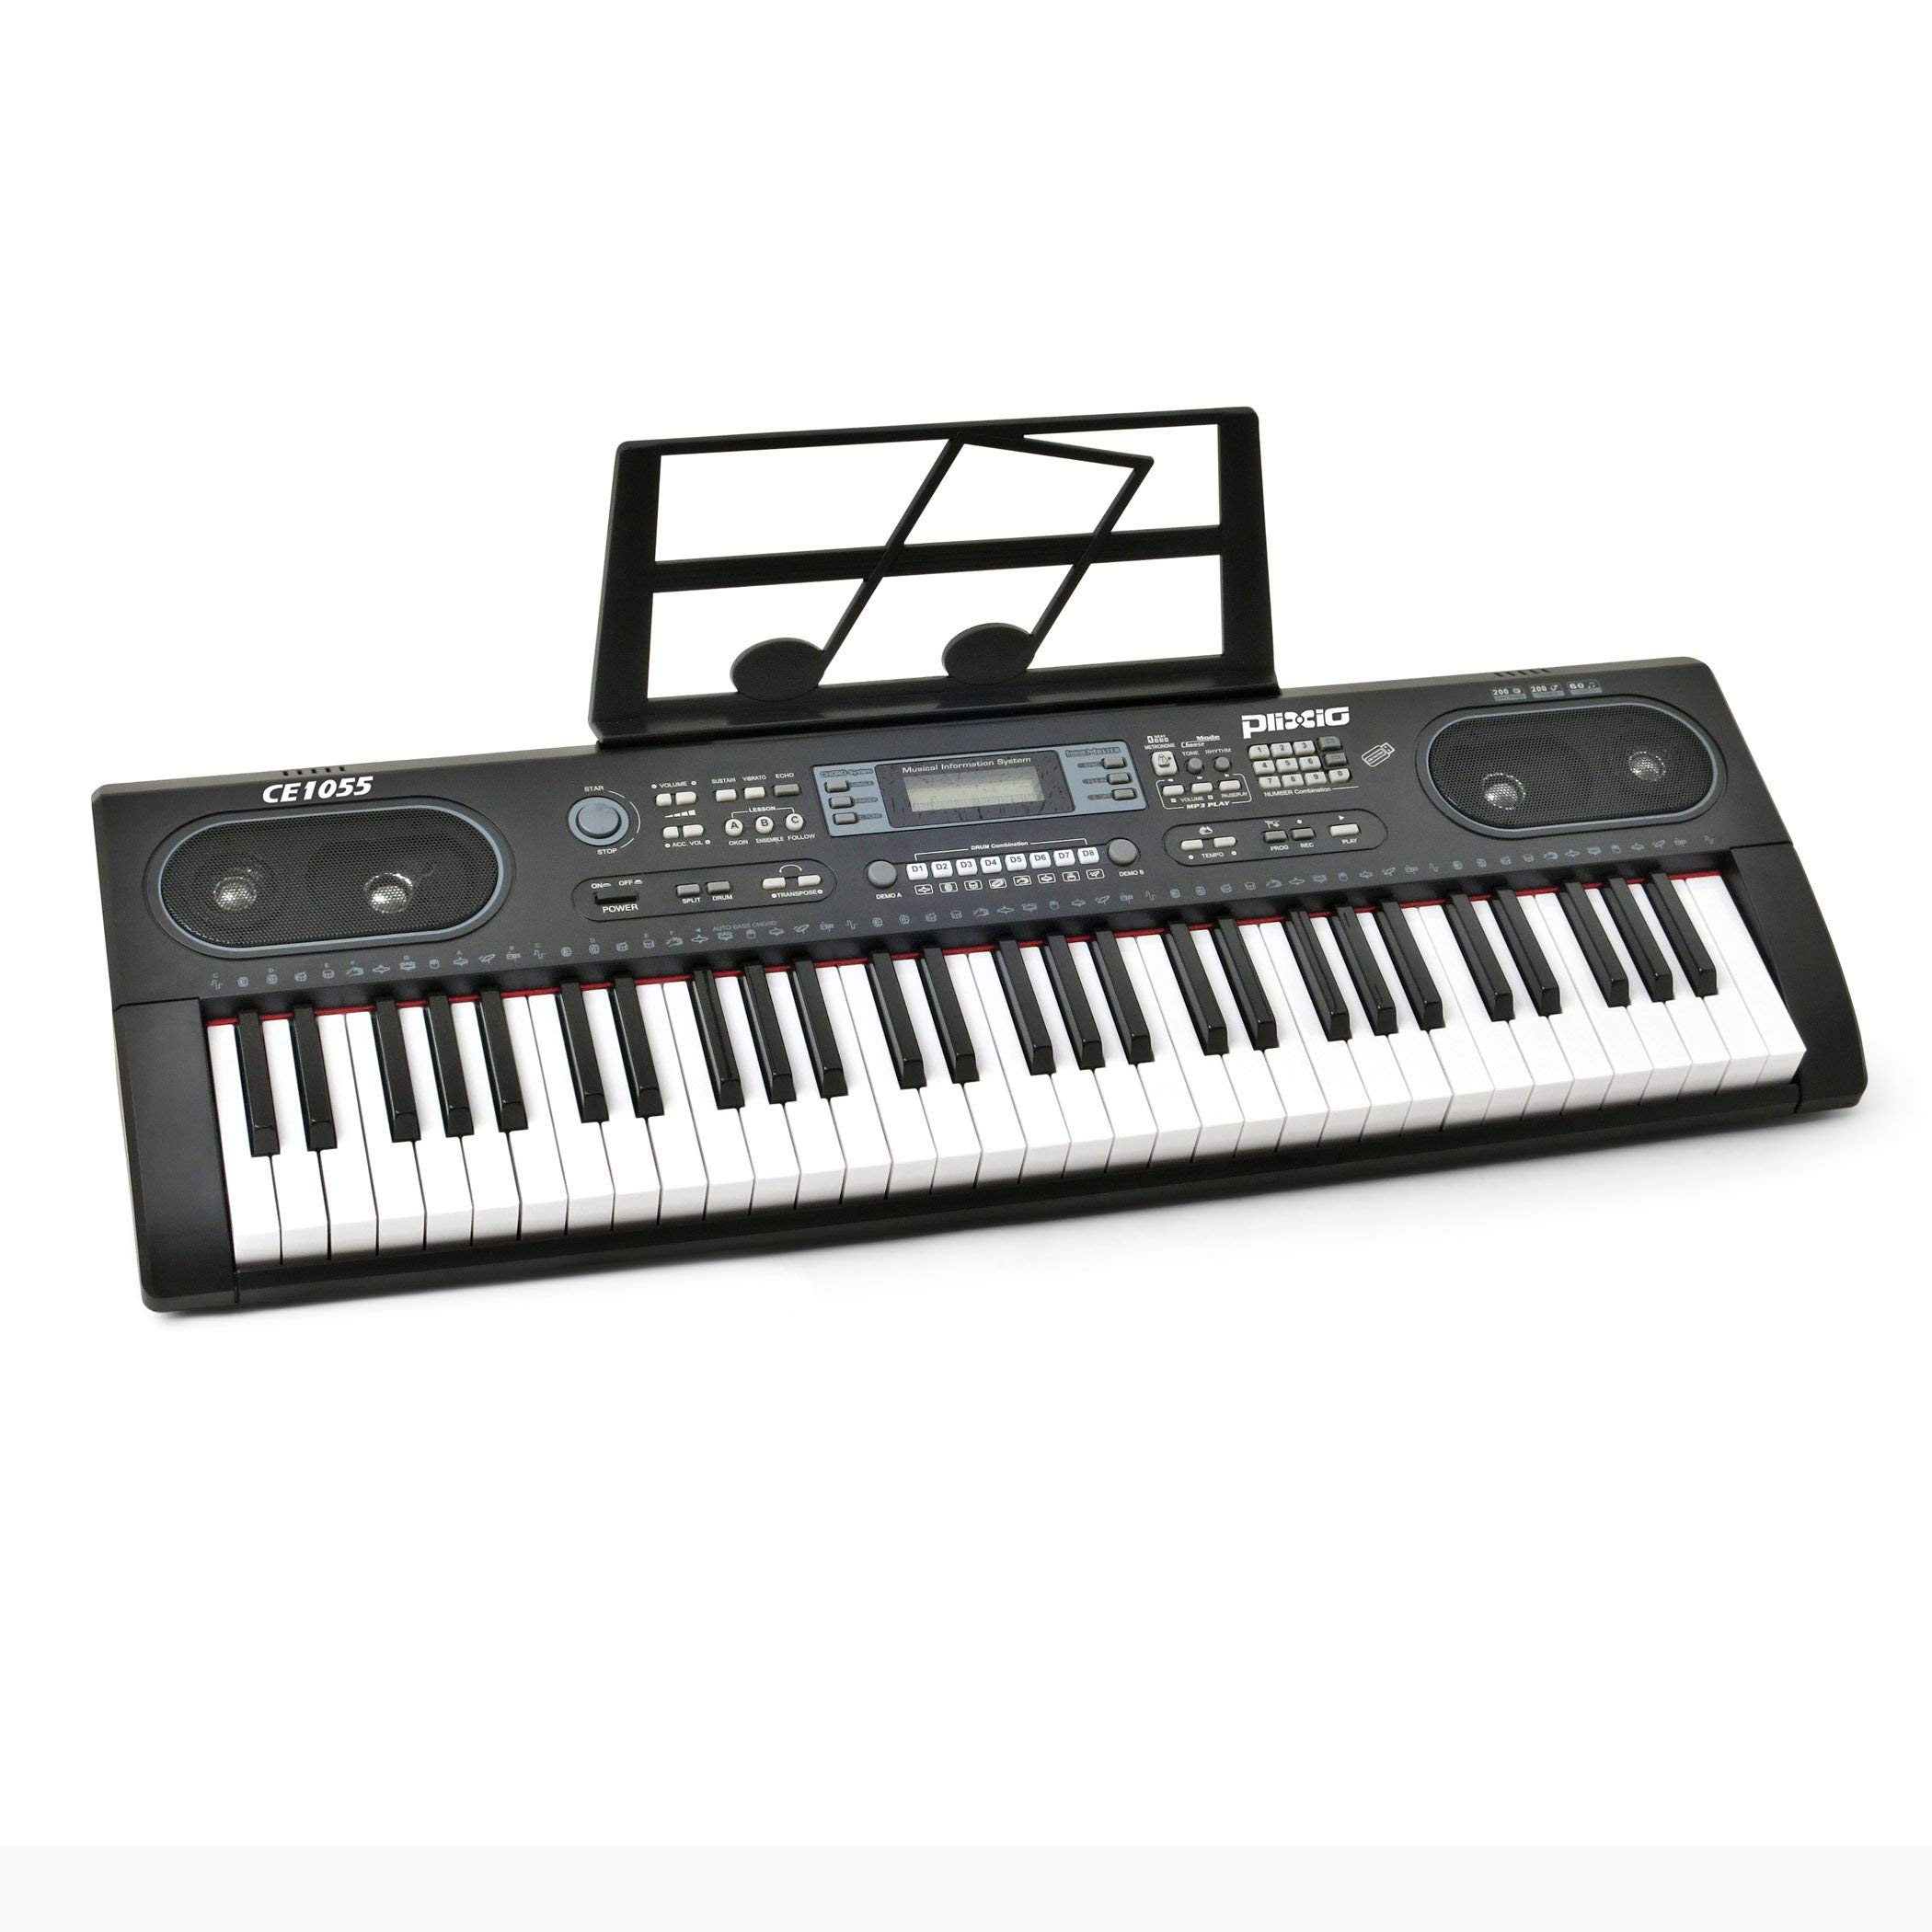 Plixio 61 Key Electronic Keyboard Piano with LED Display, Stereo & USB Input- Portable Music Keyboard (Renewed)